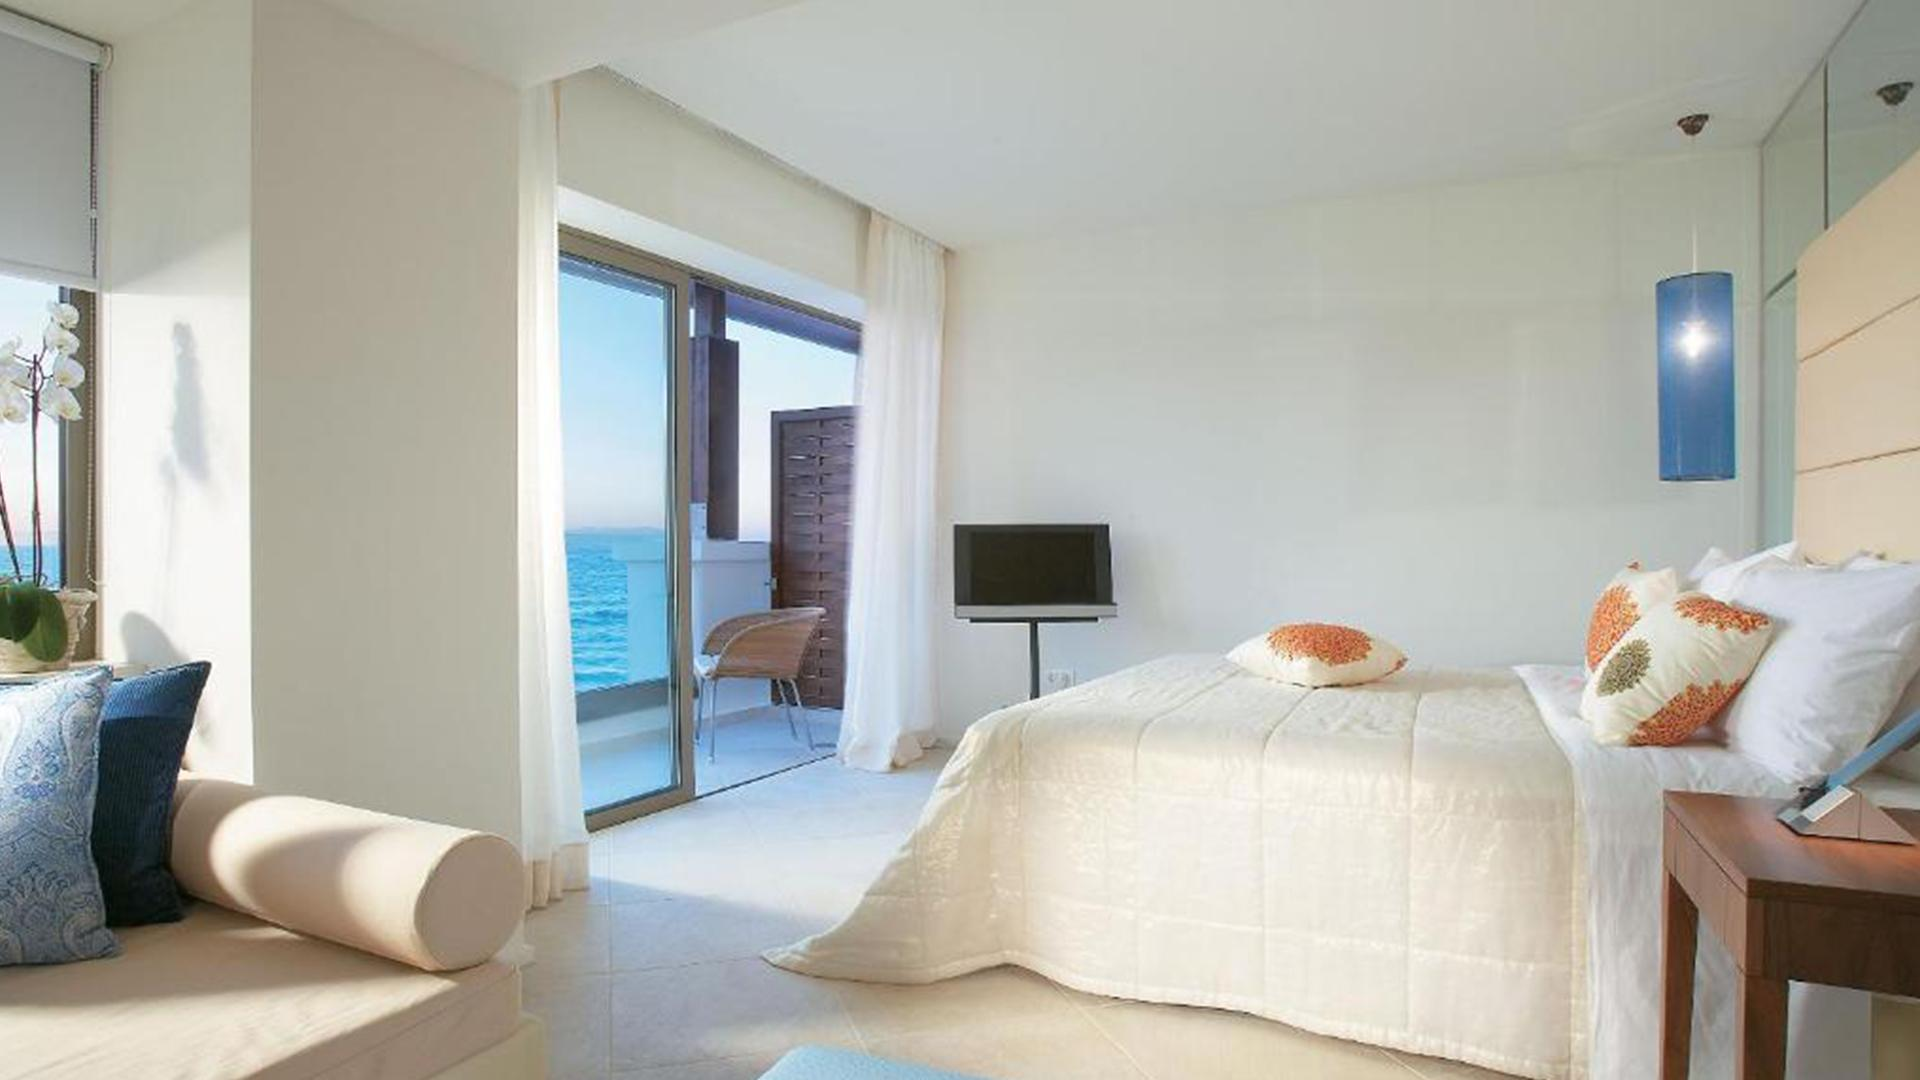 Luxury Sea View Room image 1 at Amirandes Grecotel Exclusive Resort by null, null, Greece